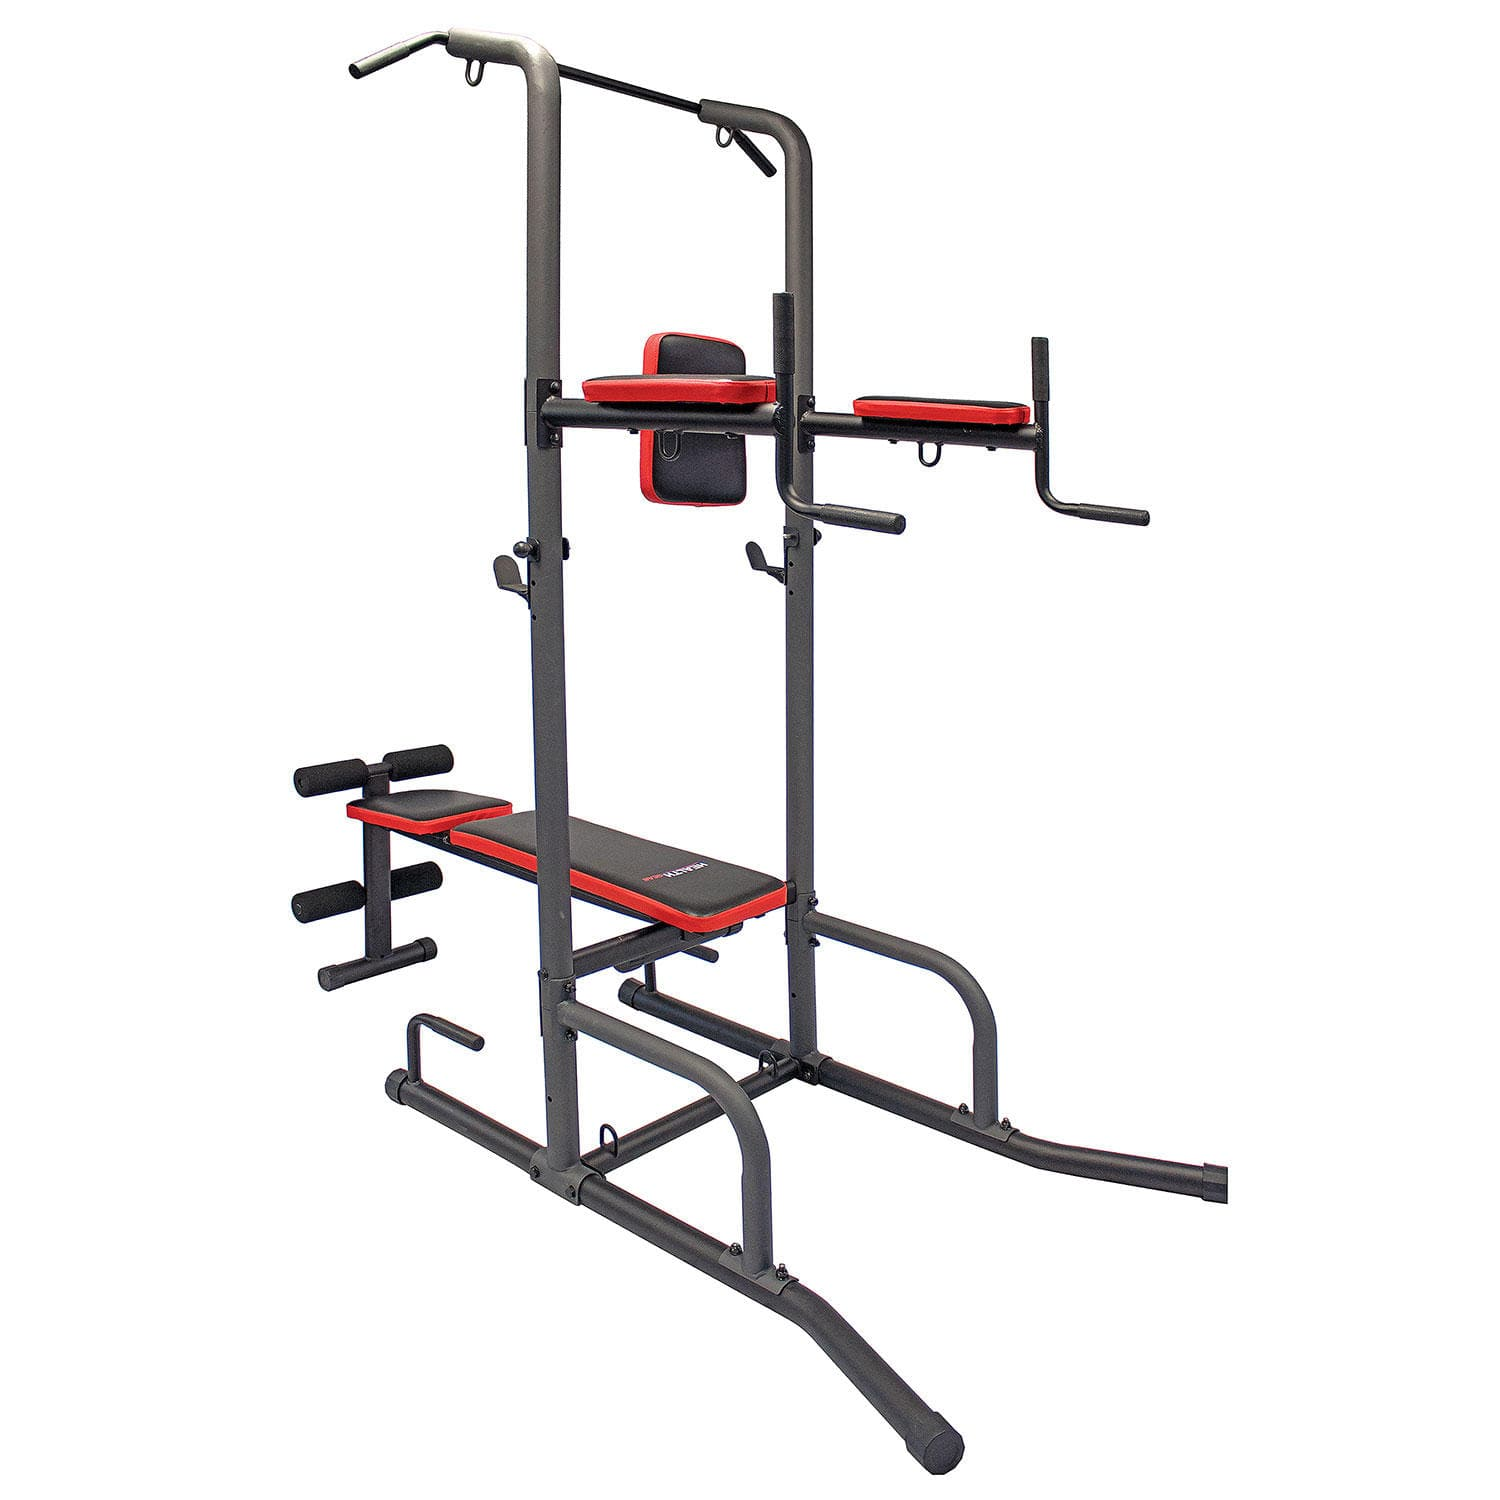 Health Gear CFT2.0 Functional Fitness Gym Style Training Power Tower & Adjustable Workout Bench System - Sam's Club $198.98